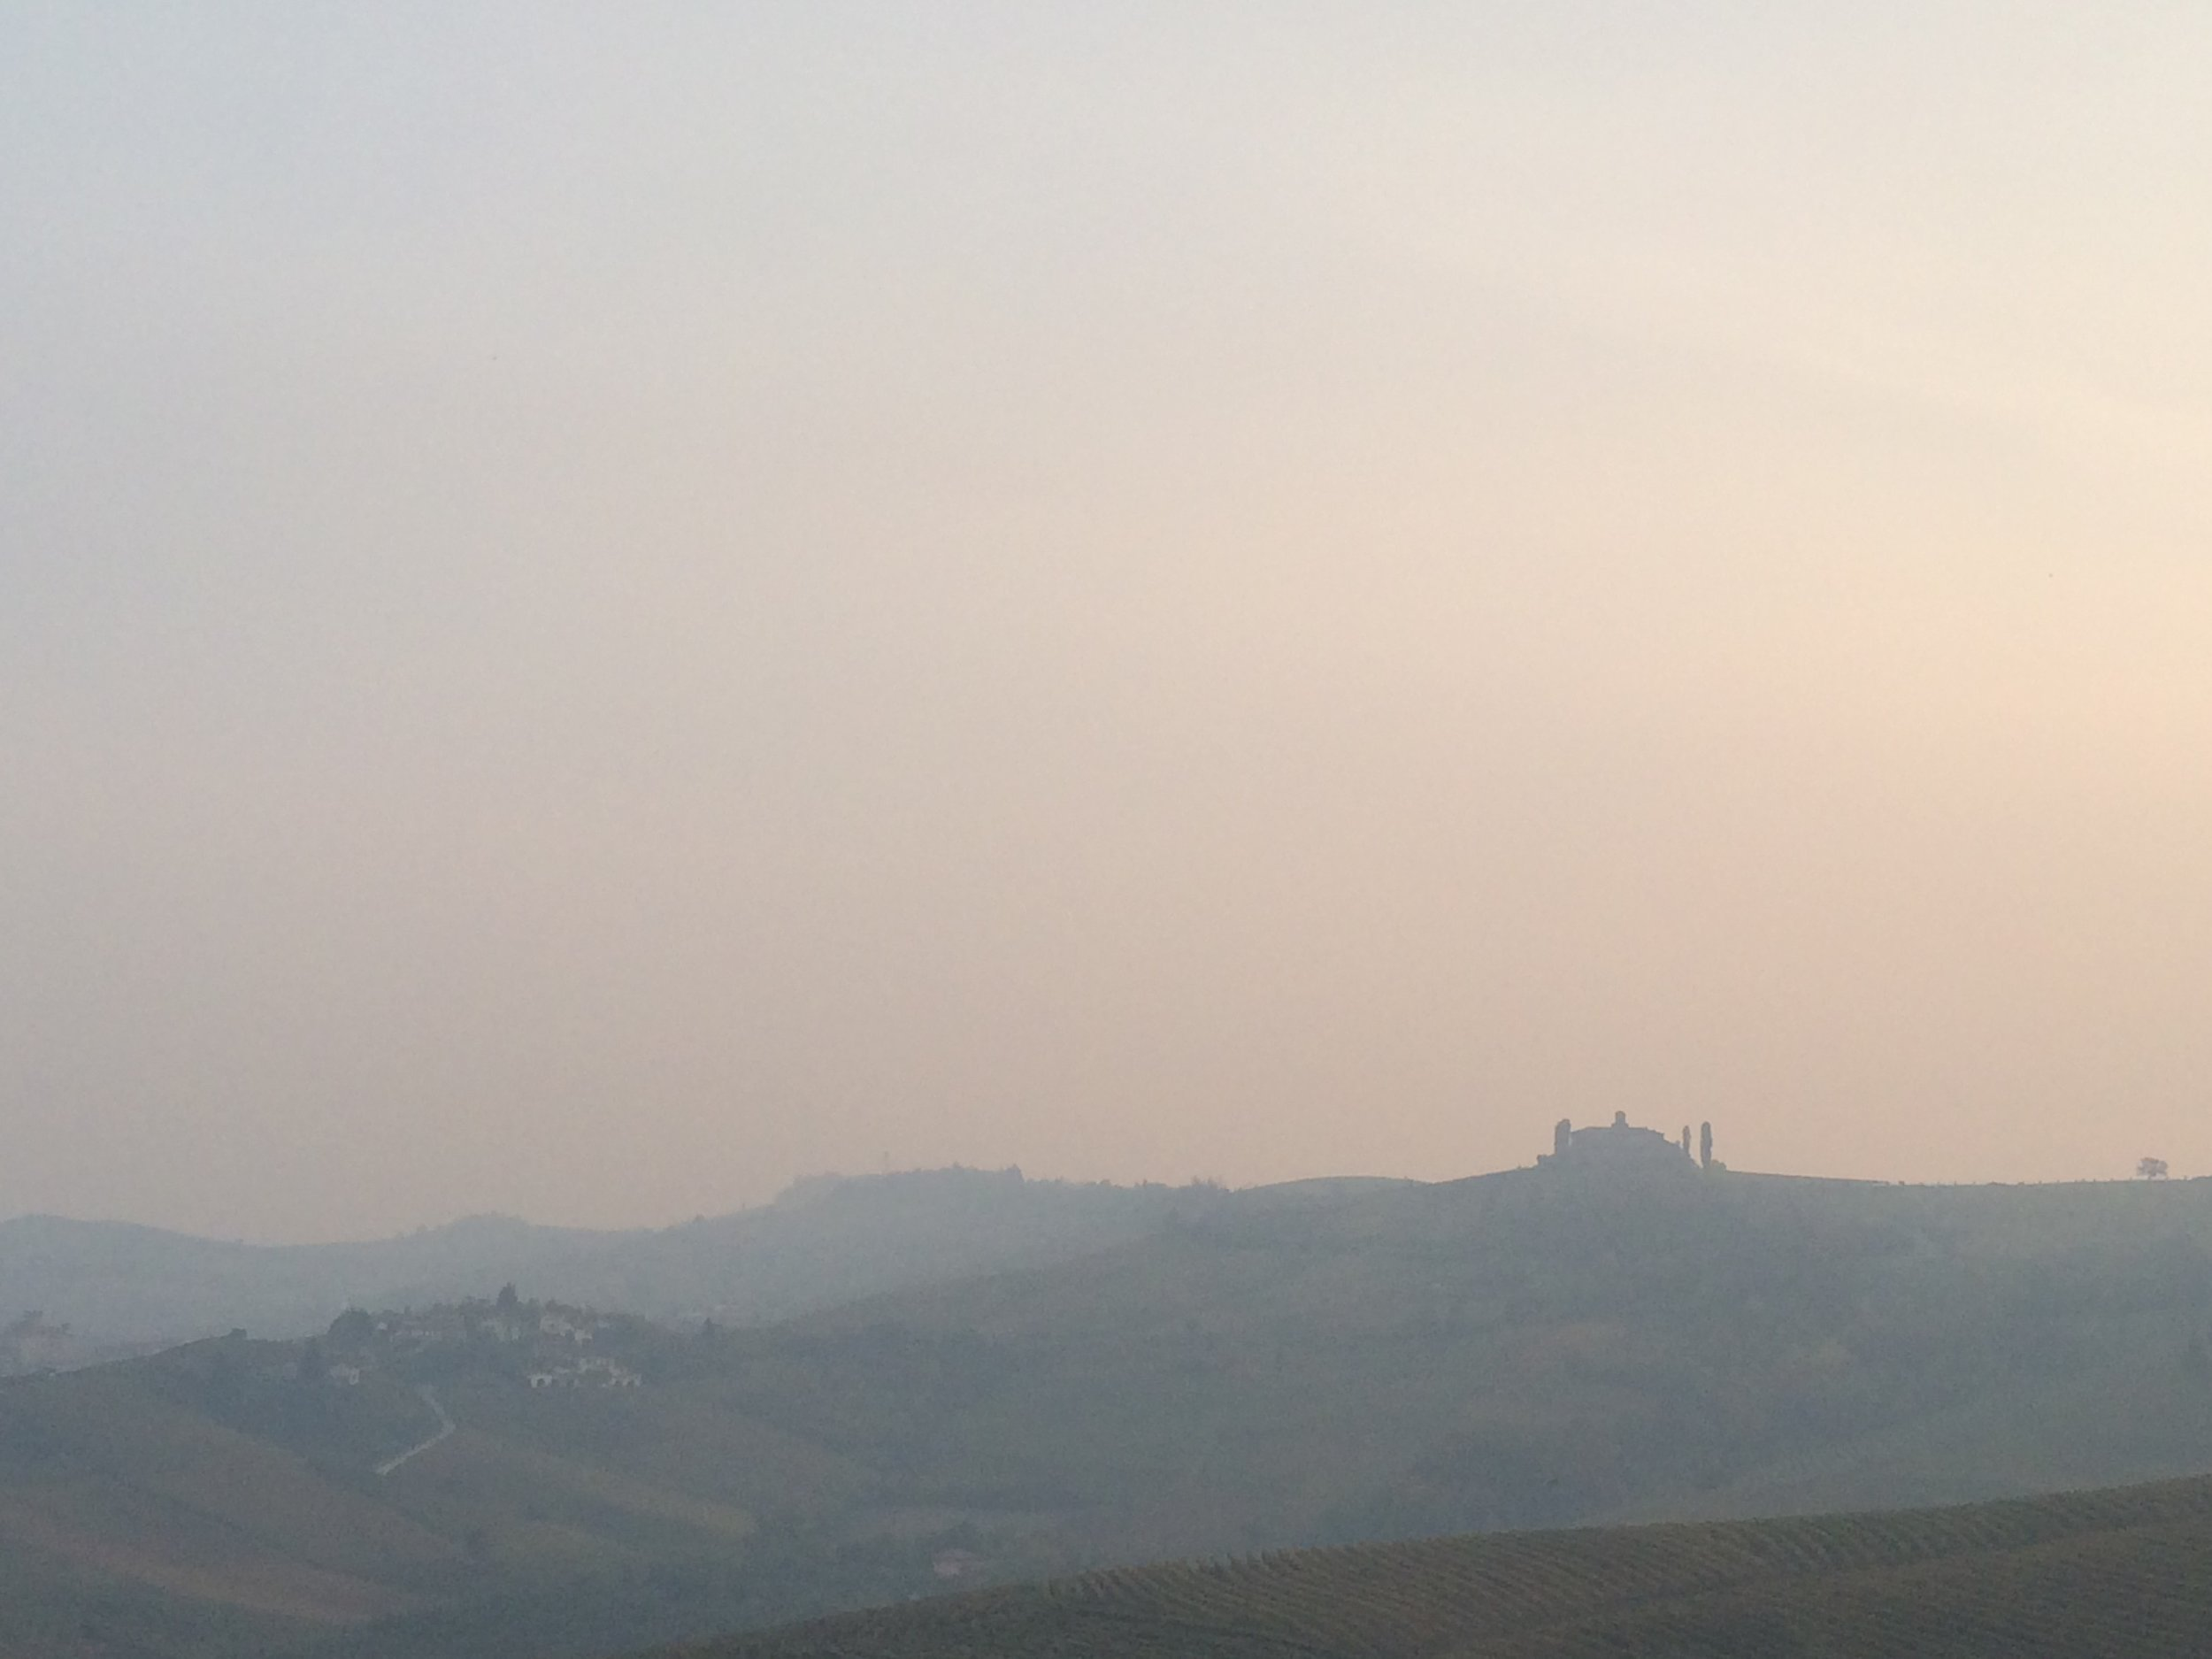 Copy of Best Piemonte Wine Tour - View of the Langhe